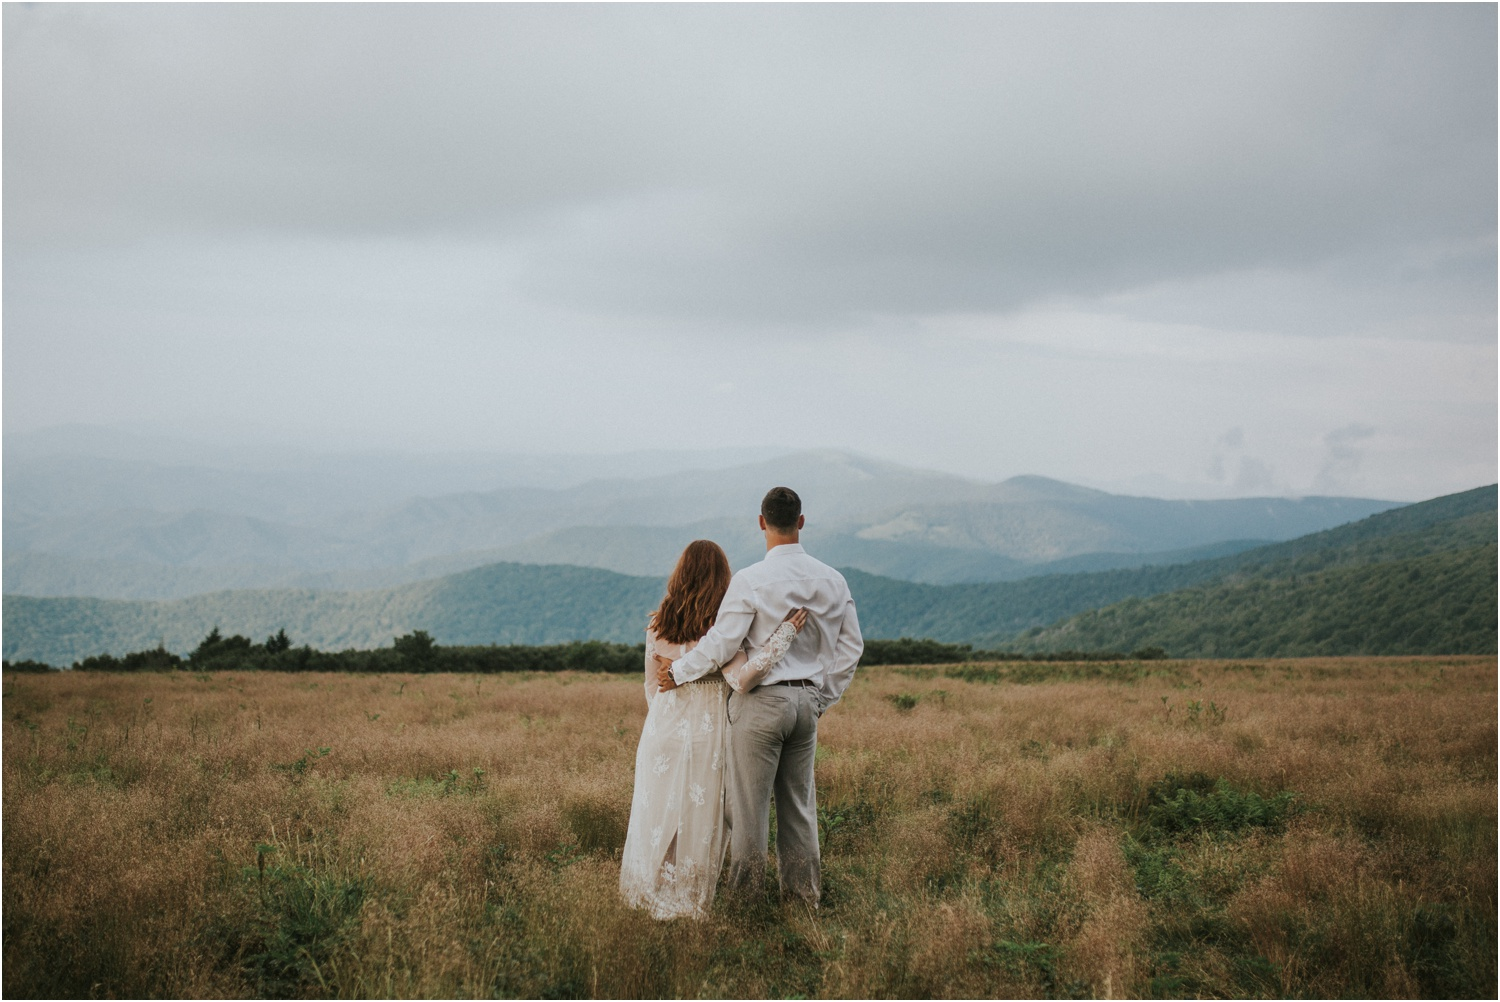 lovestoriesco-asheville-north-carolina-elopement-wedding-22.jpg